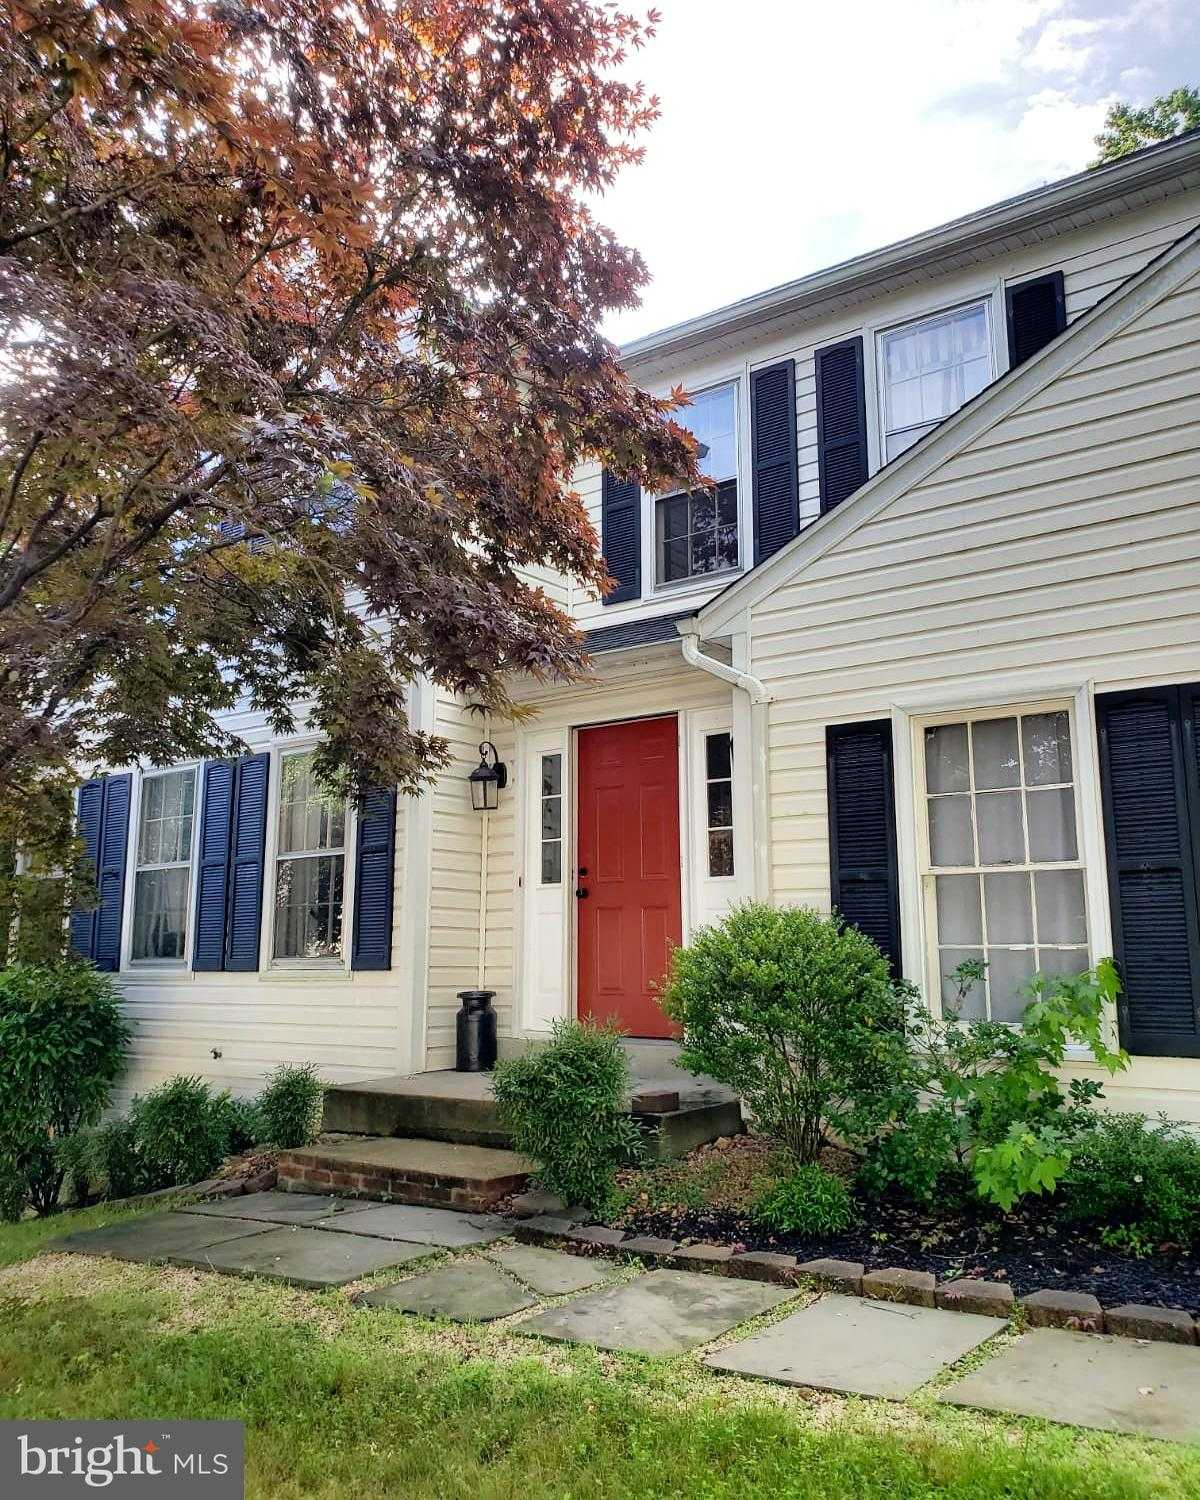 7731 GREEN GARLAND DRIVE, SPRINGFIELD, VA, 22153 $619,900 Active Open House  Just Listed